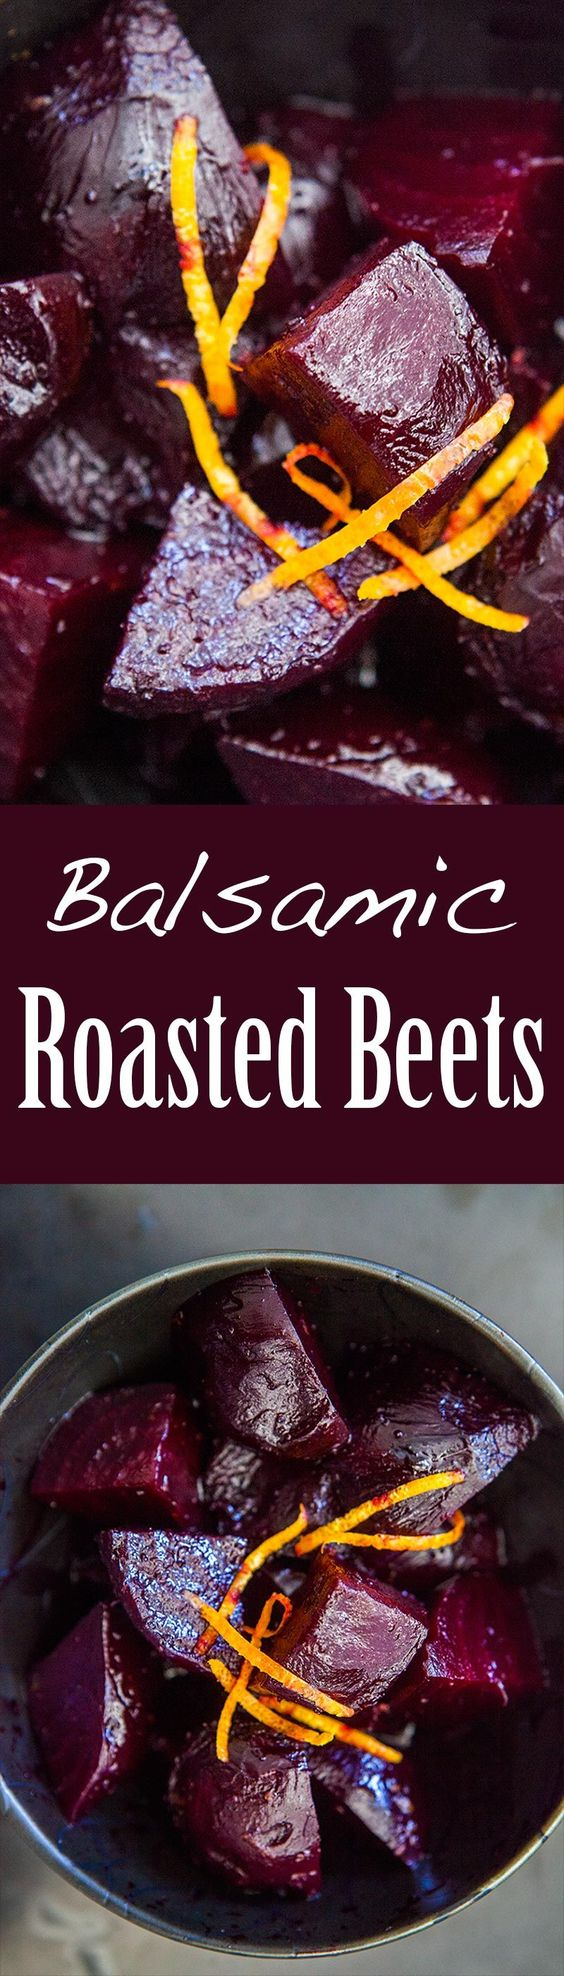 Roasted Beets with Balsamic Glaze ~ Ruby red beets, oven roasted, then ...